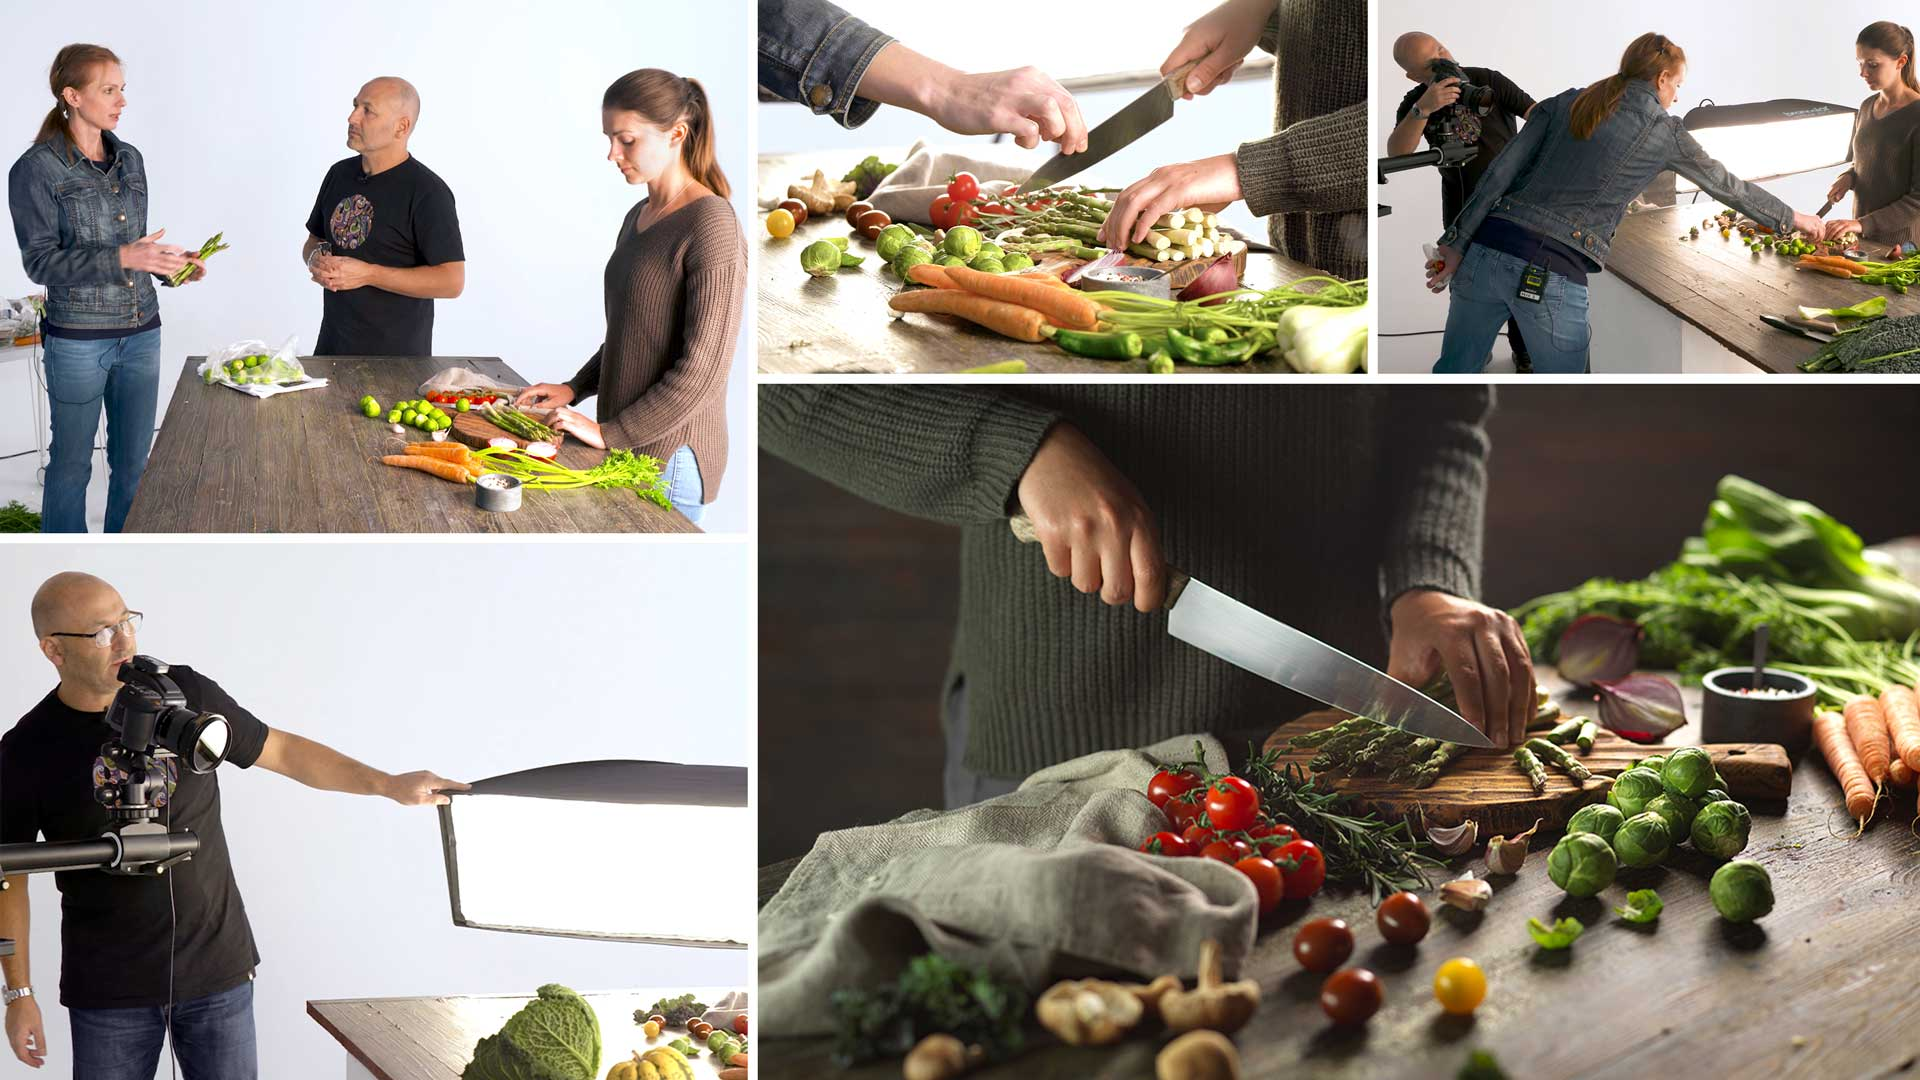 Lifestyle food photography – Chopping vegetables